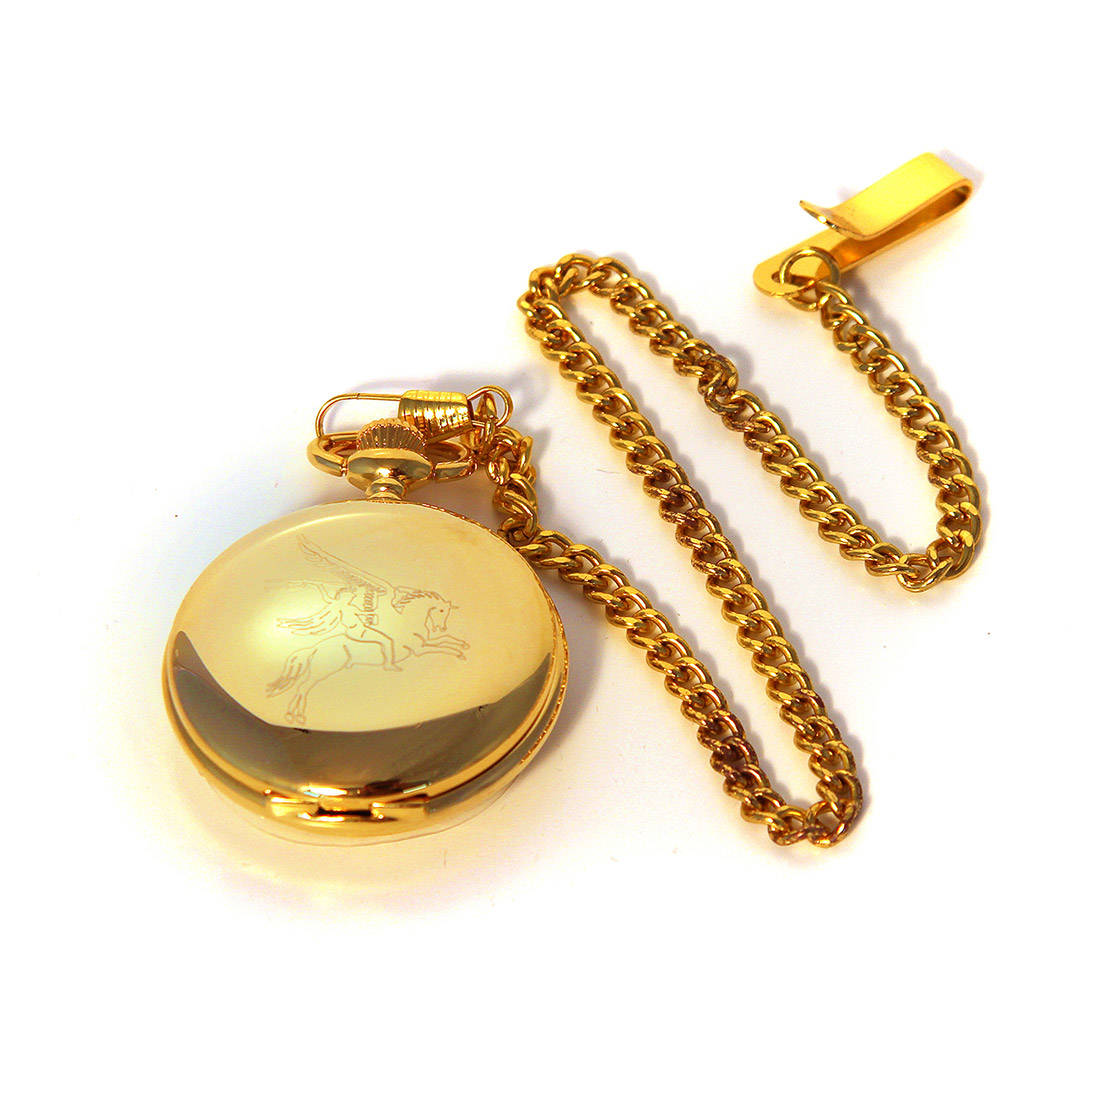 Gilt Finish Engraved Pocket Watch - Pegasus